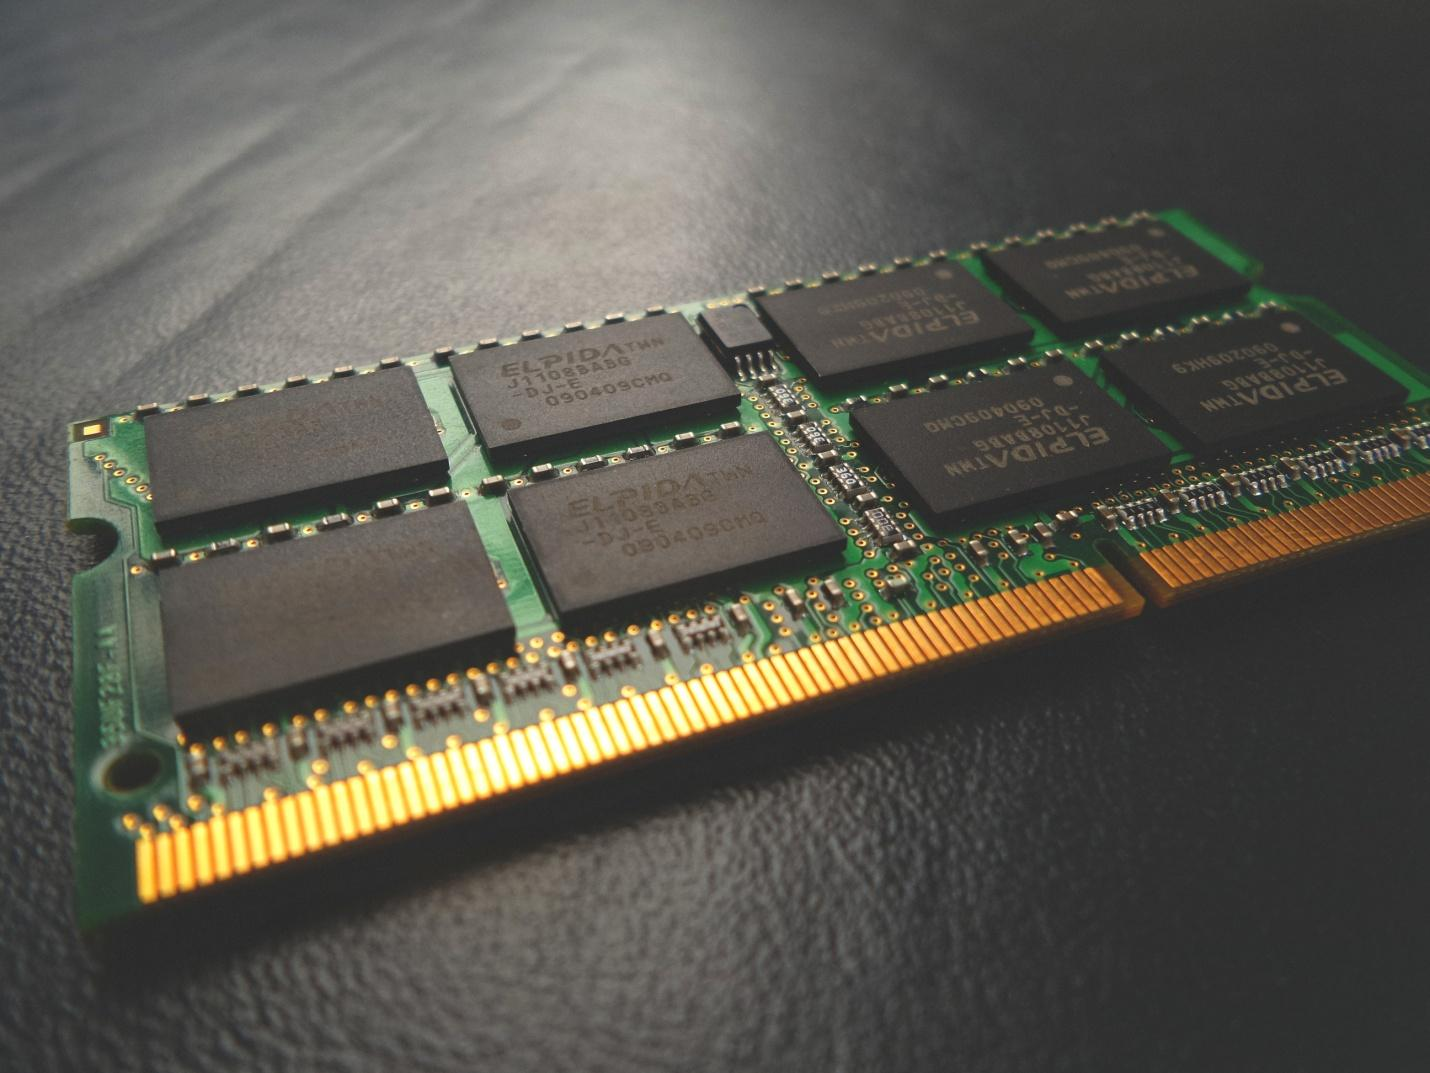 RAM And Other Specs Are Important To Consider